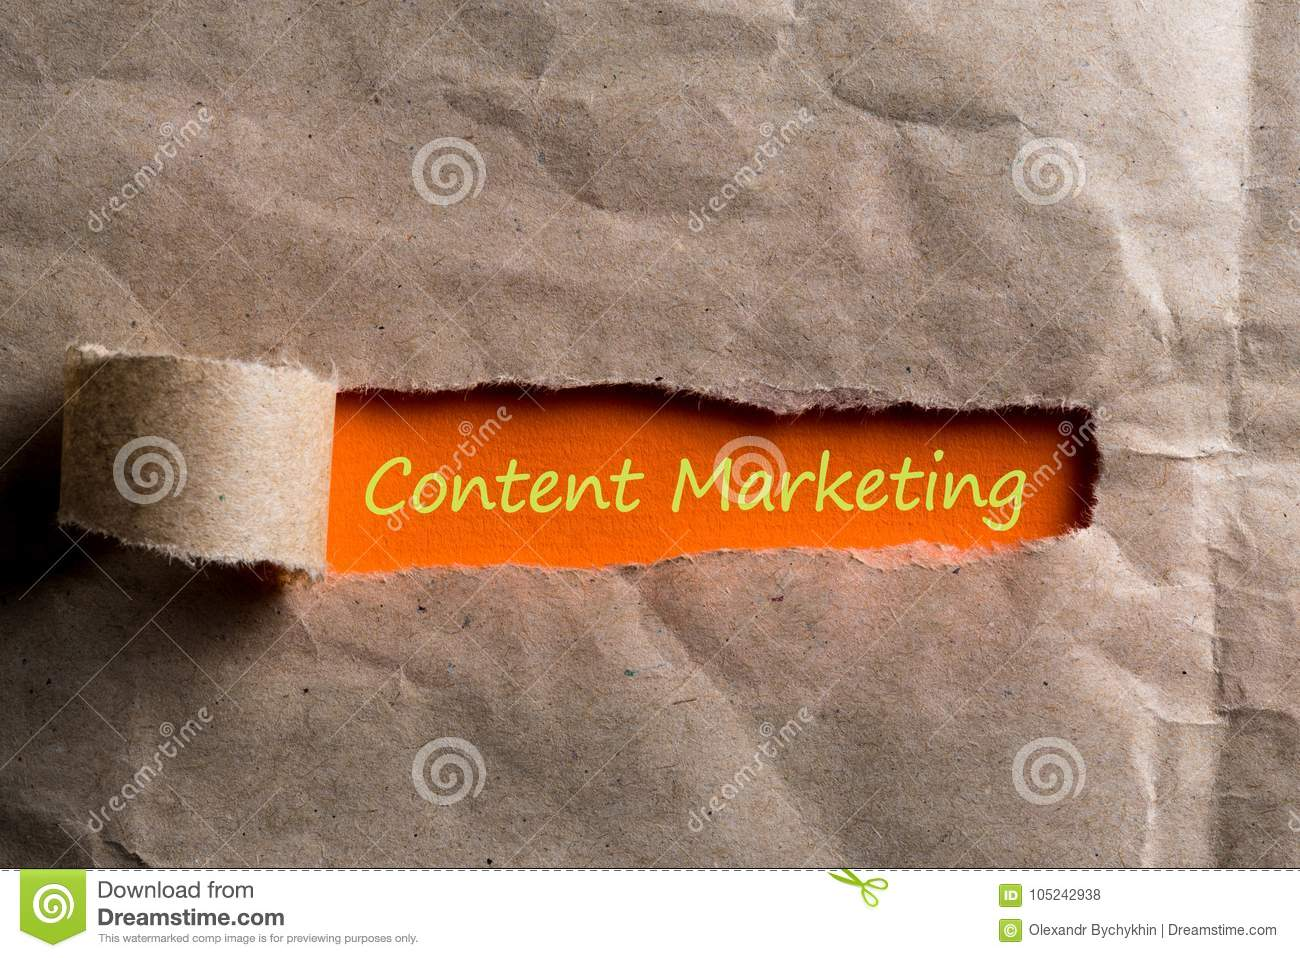 Content Marketing Social Media Advertising Commercial Branding Concept. message appearing behind ripped brown paper.